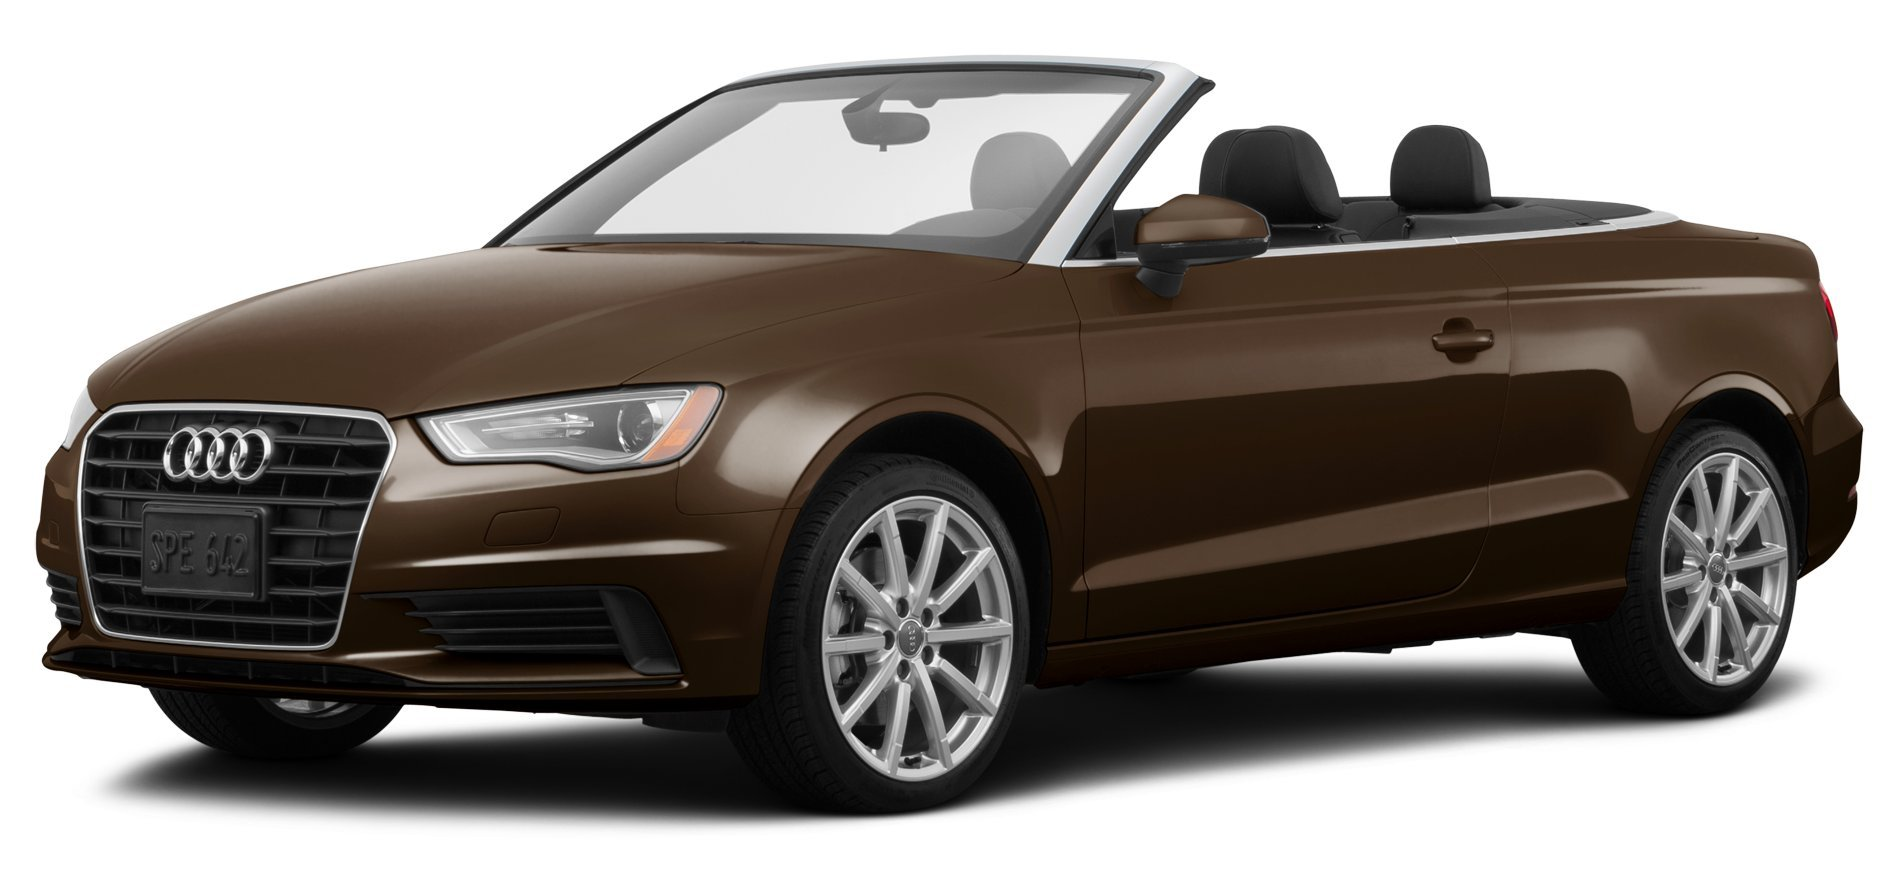 car sale sport convertible htm fq info audi for quattro olympicnocpins best oem edmunds pricing reviews